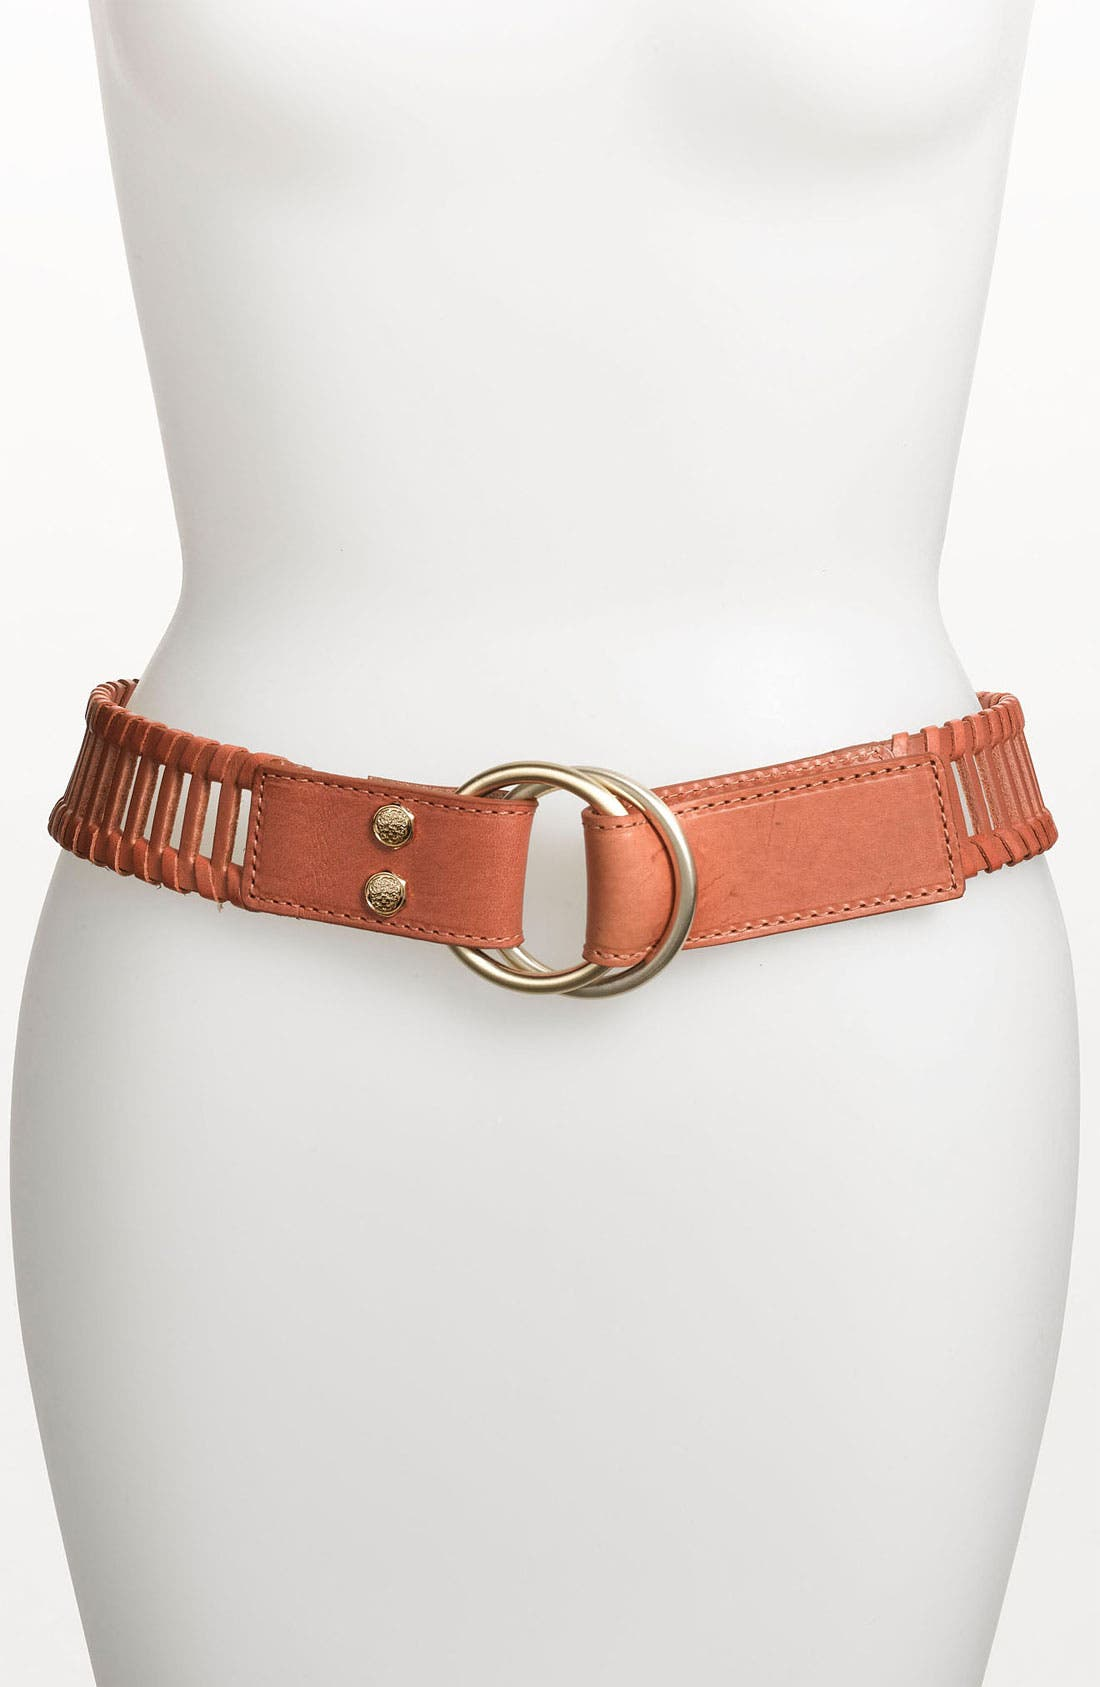 Alternate Image 1 Selected - Vince Camuto Double Pull Back Leather Belt